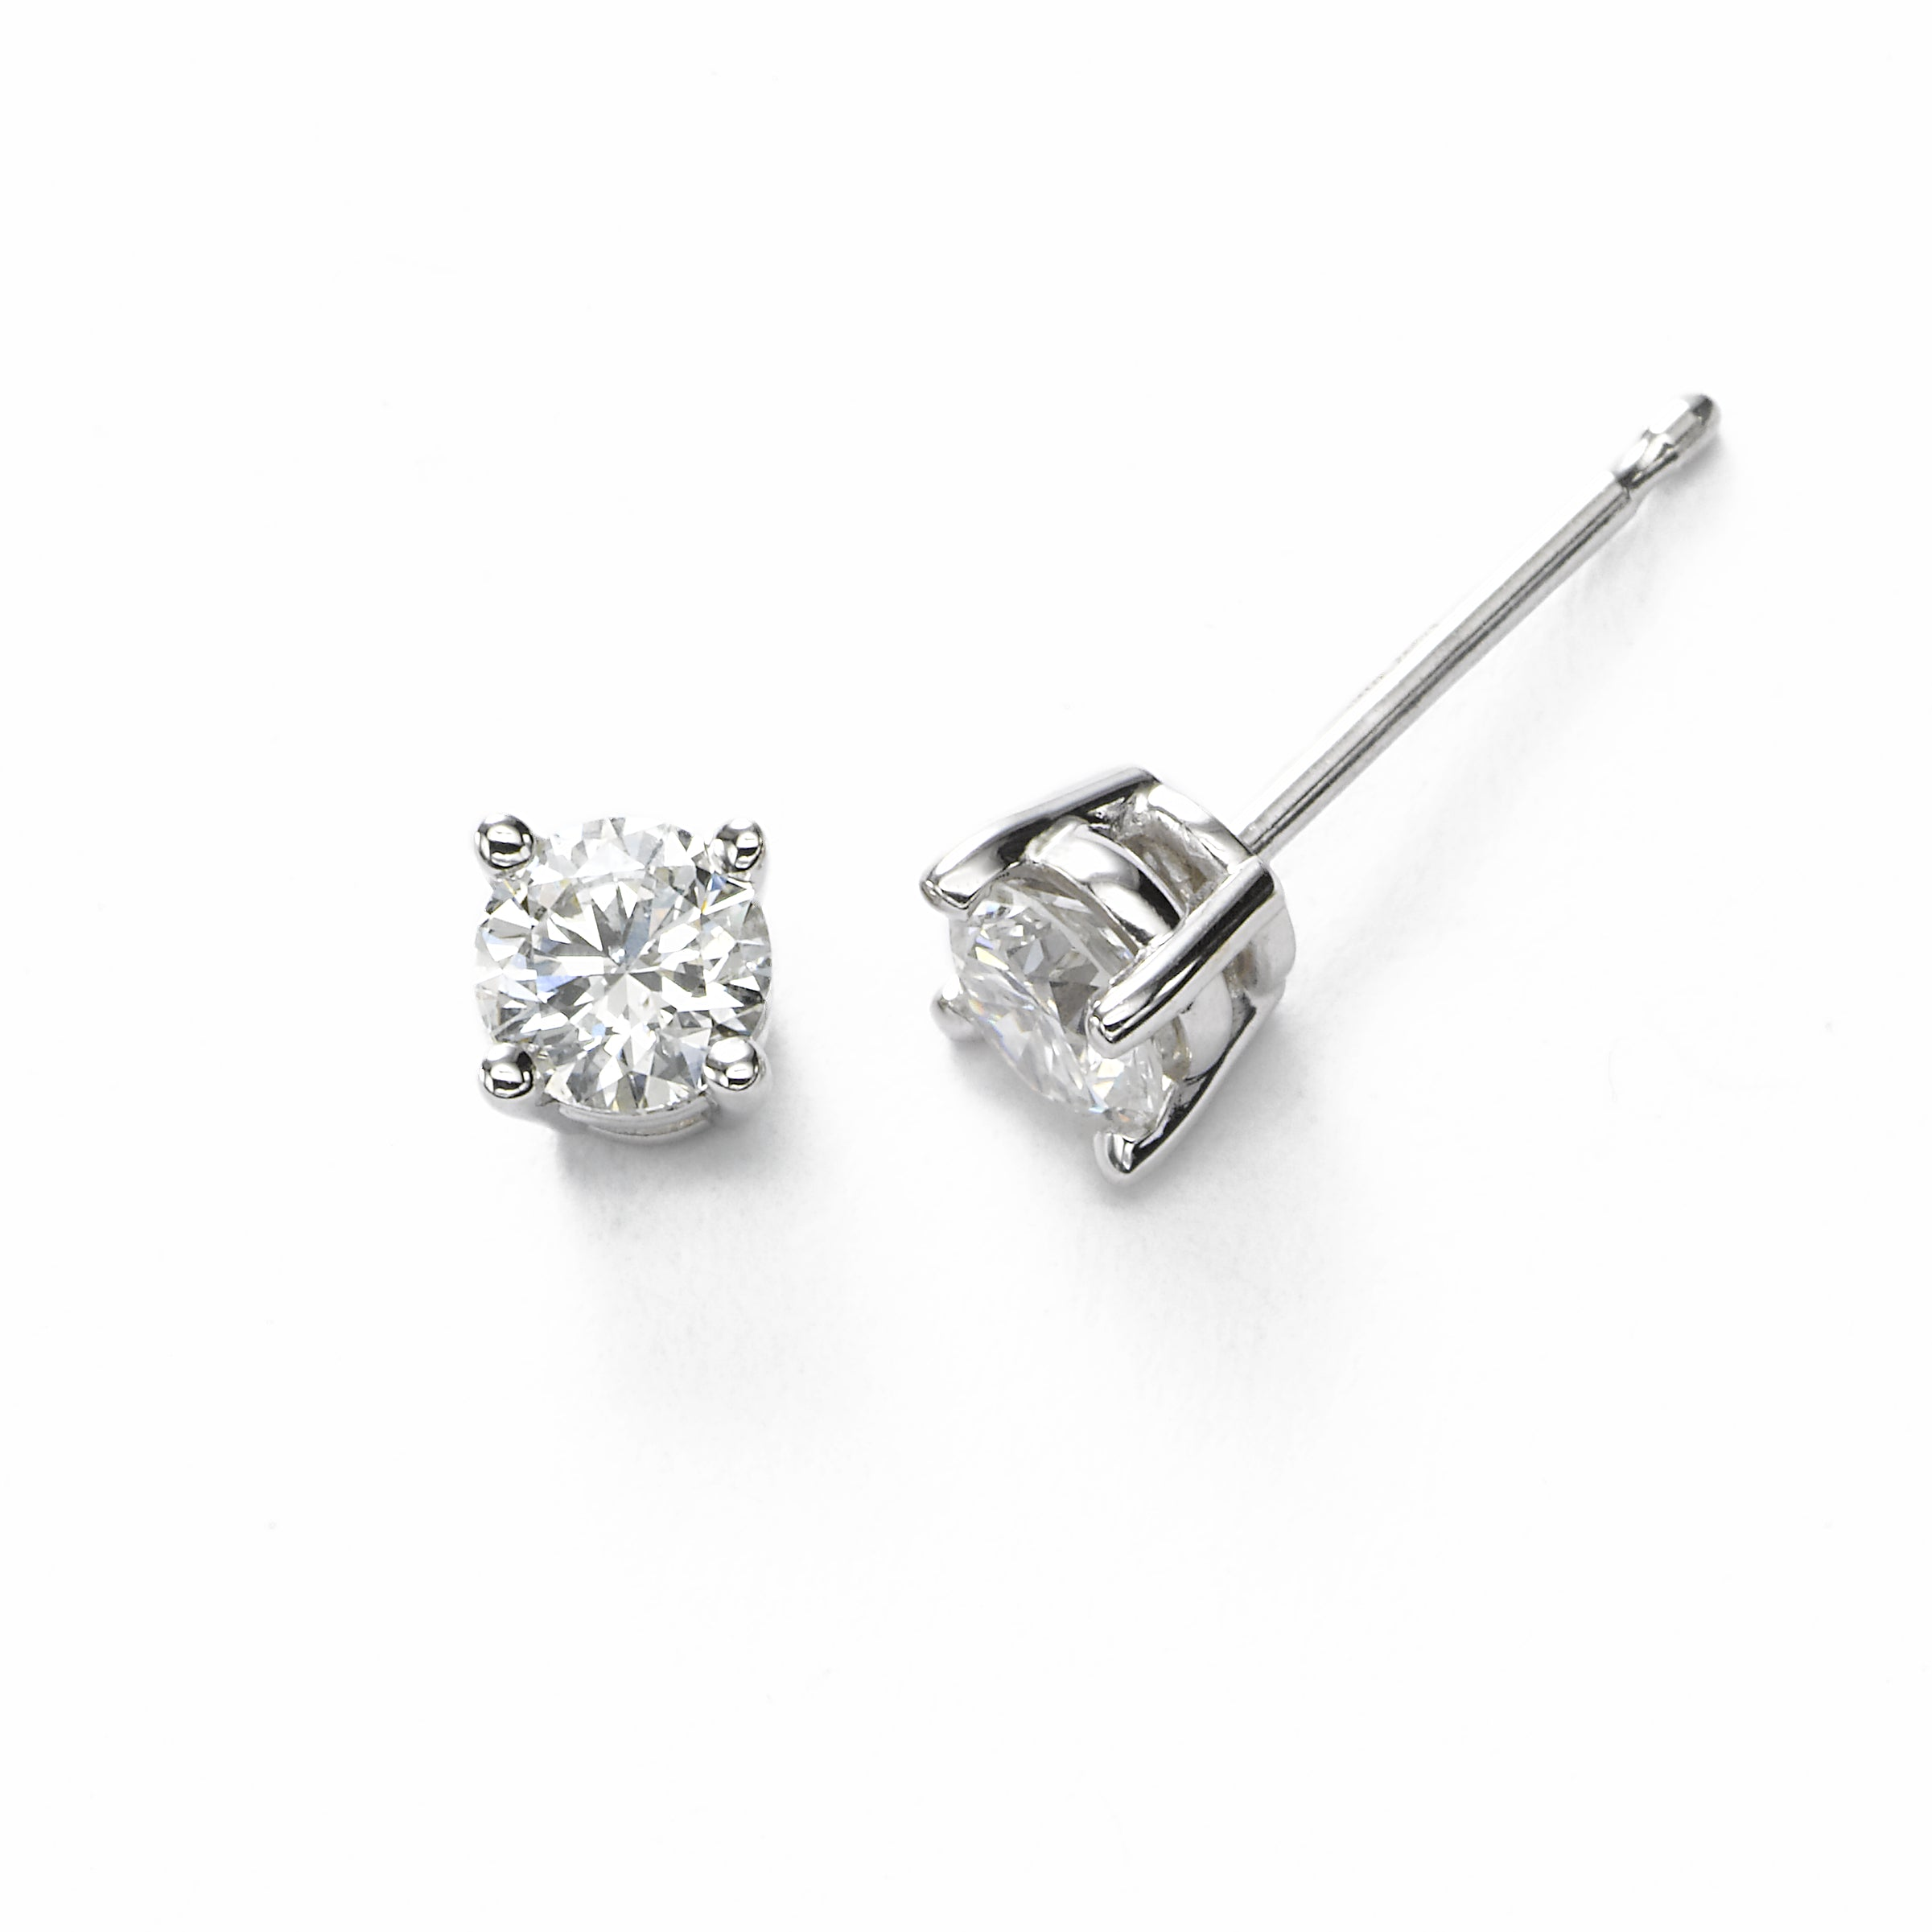 Diamond Stud Earrings, .15 Carat Total, SI2, 14K White Gold